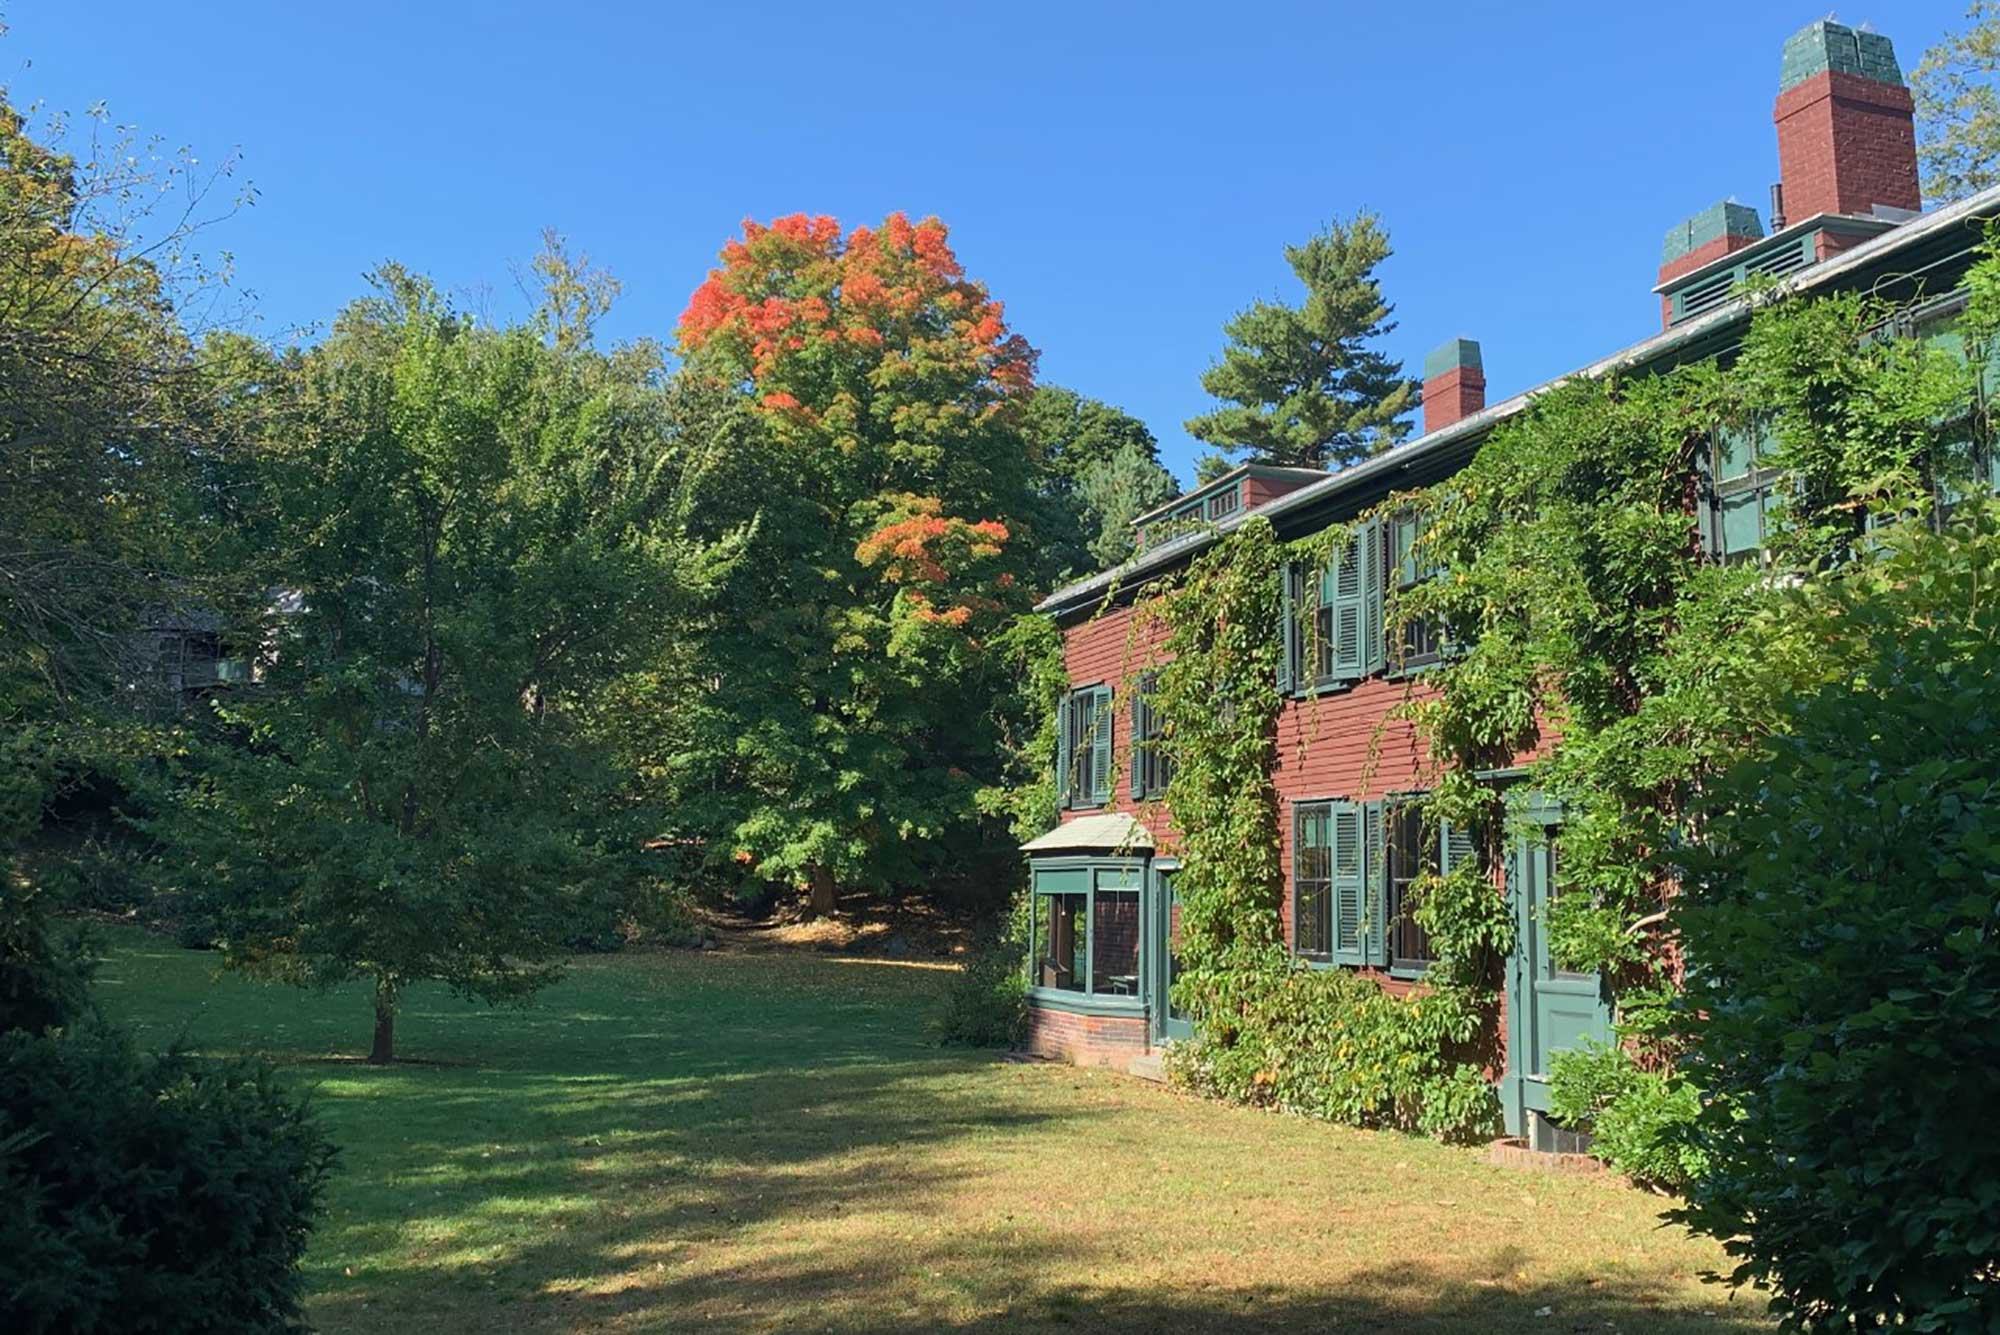 Photo of the old home of Frederick Law Olmsted in Brookline. The leaves on the trees behind the crimson-colored house are starting to turn.